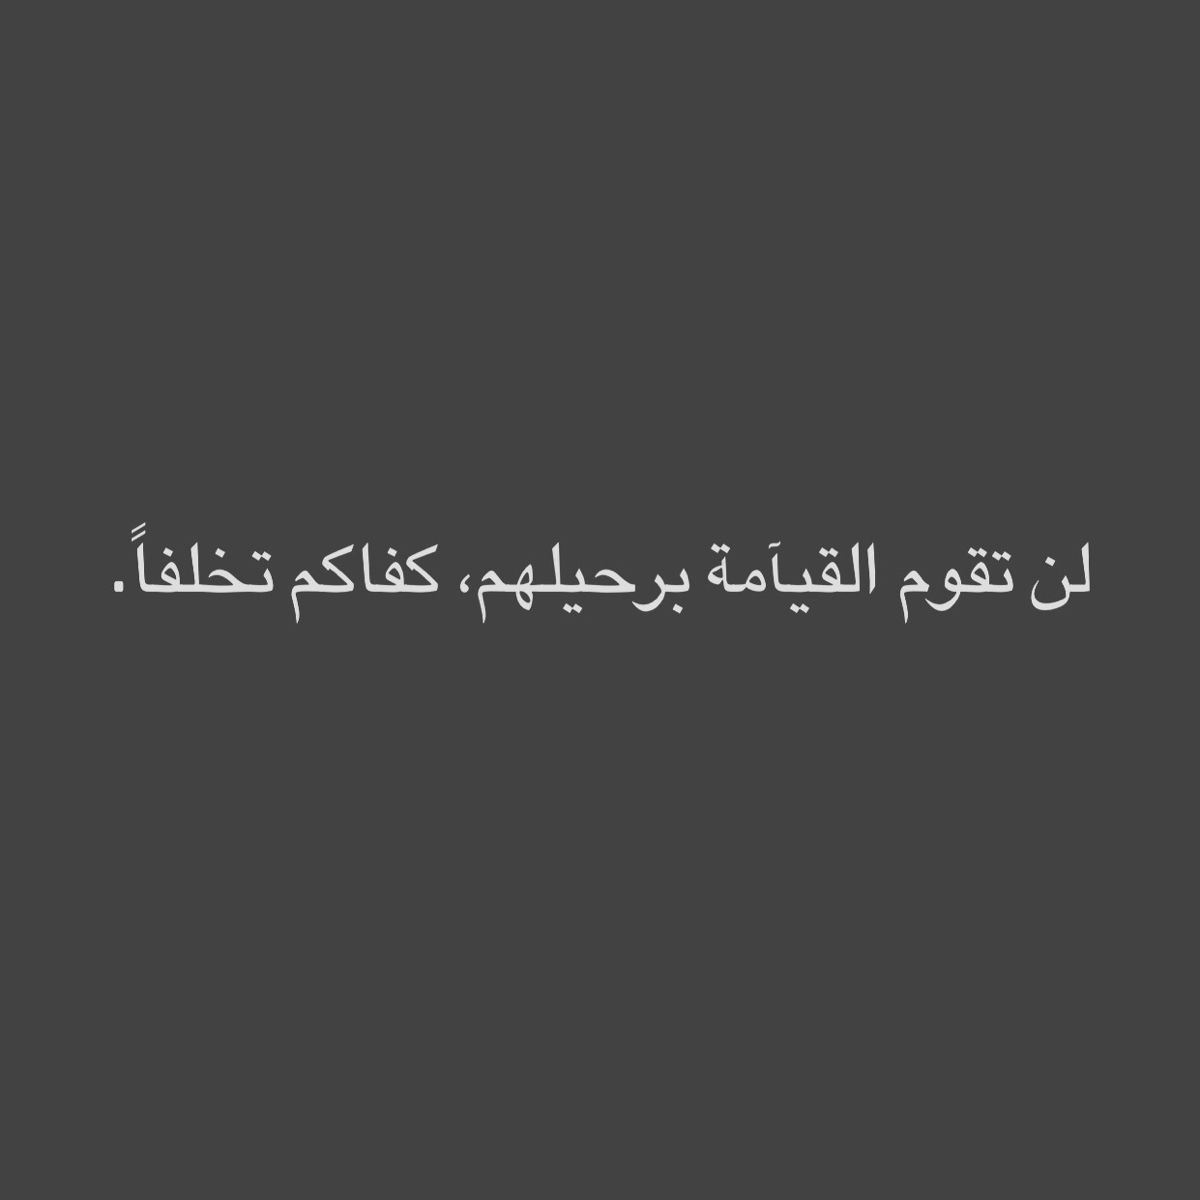 Pin By Tariqalsourani On Arabic Wisdom Quotes In 2020 Wisdom Quotes Wisdom Quotes